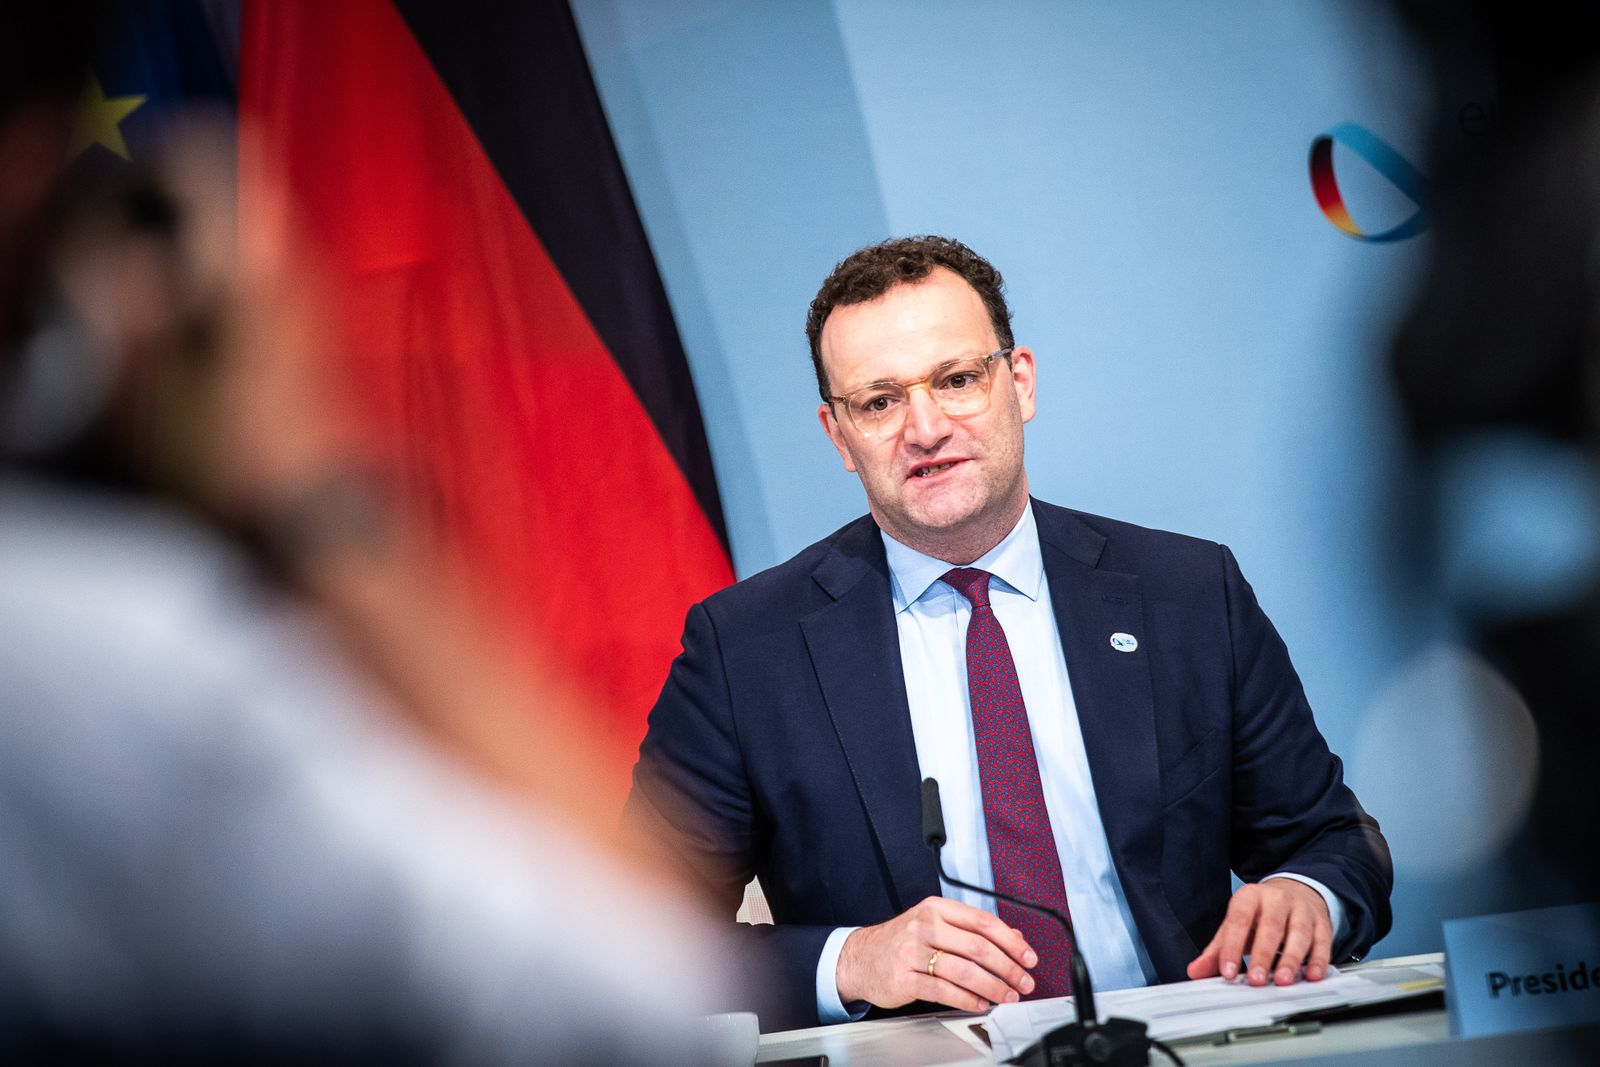 Informal meeting of the Ministers of Health in Berlin, Germany - 16 Jul 2020